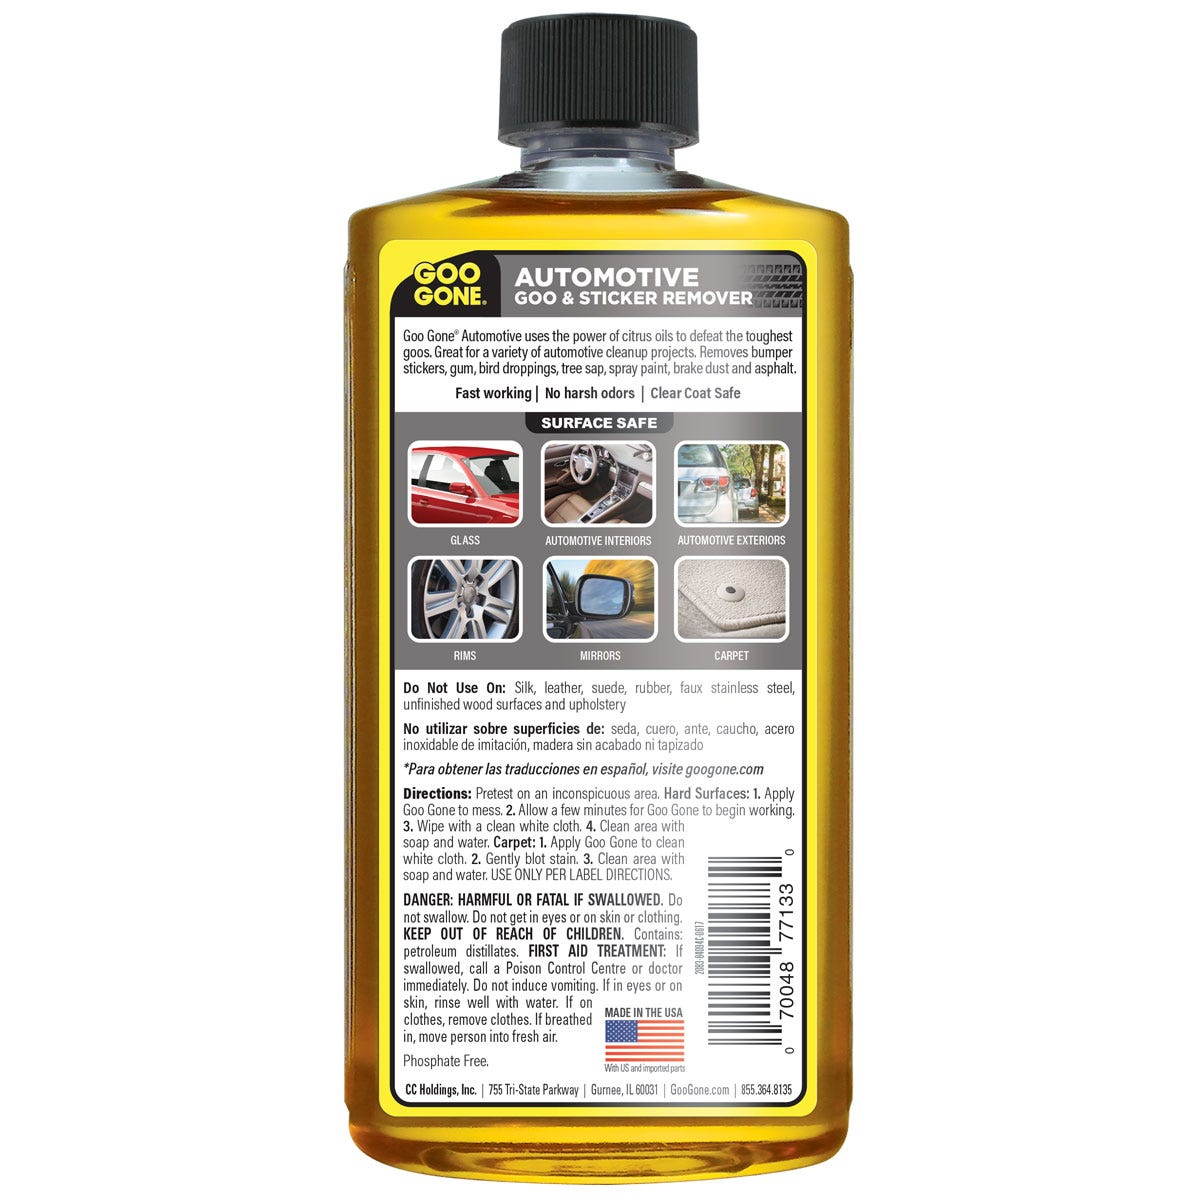 Goo Gone Automotive back label